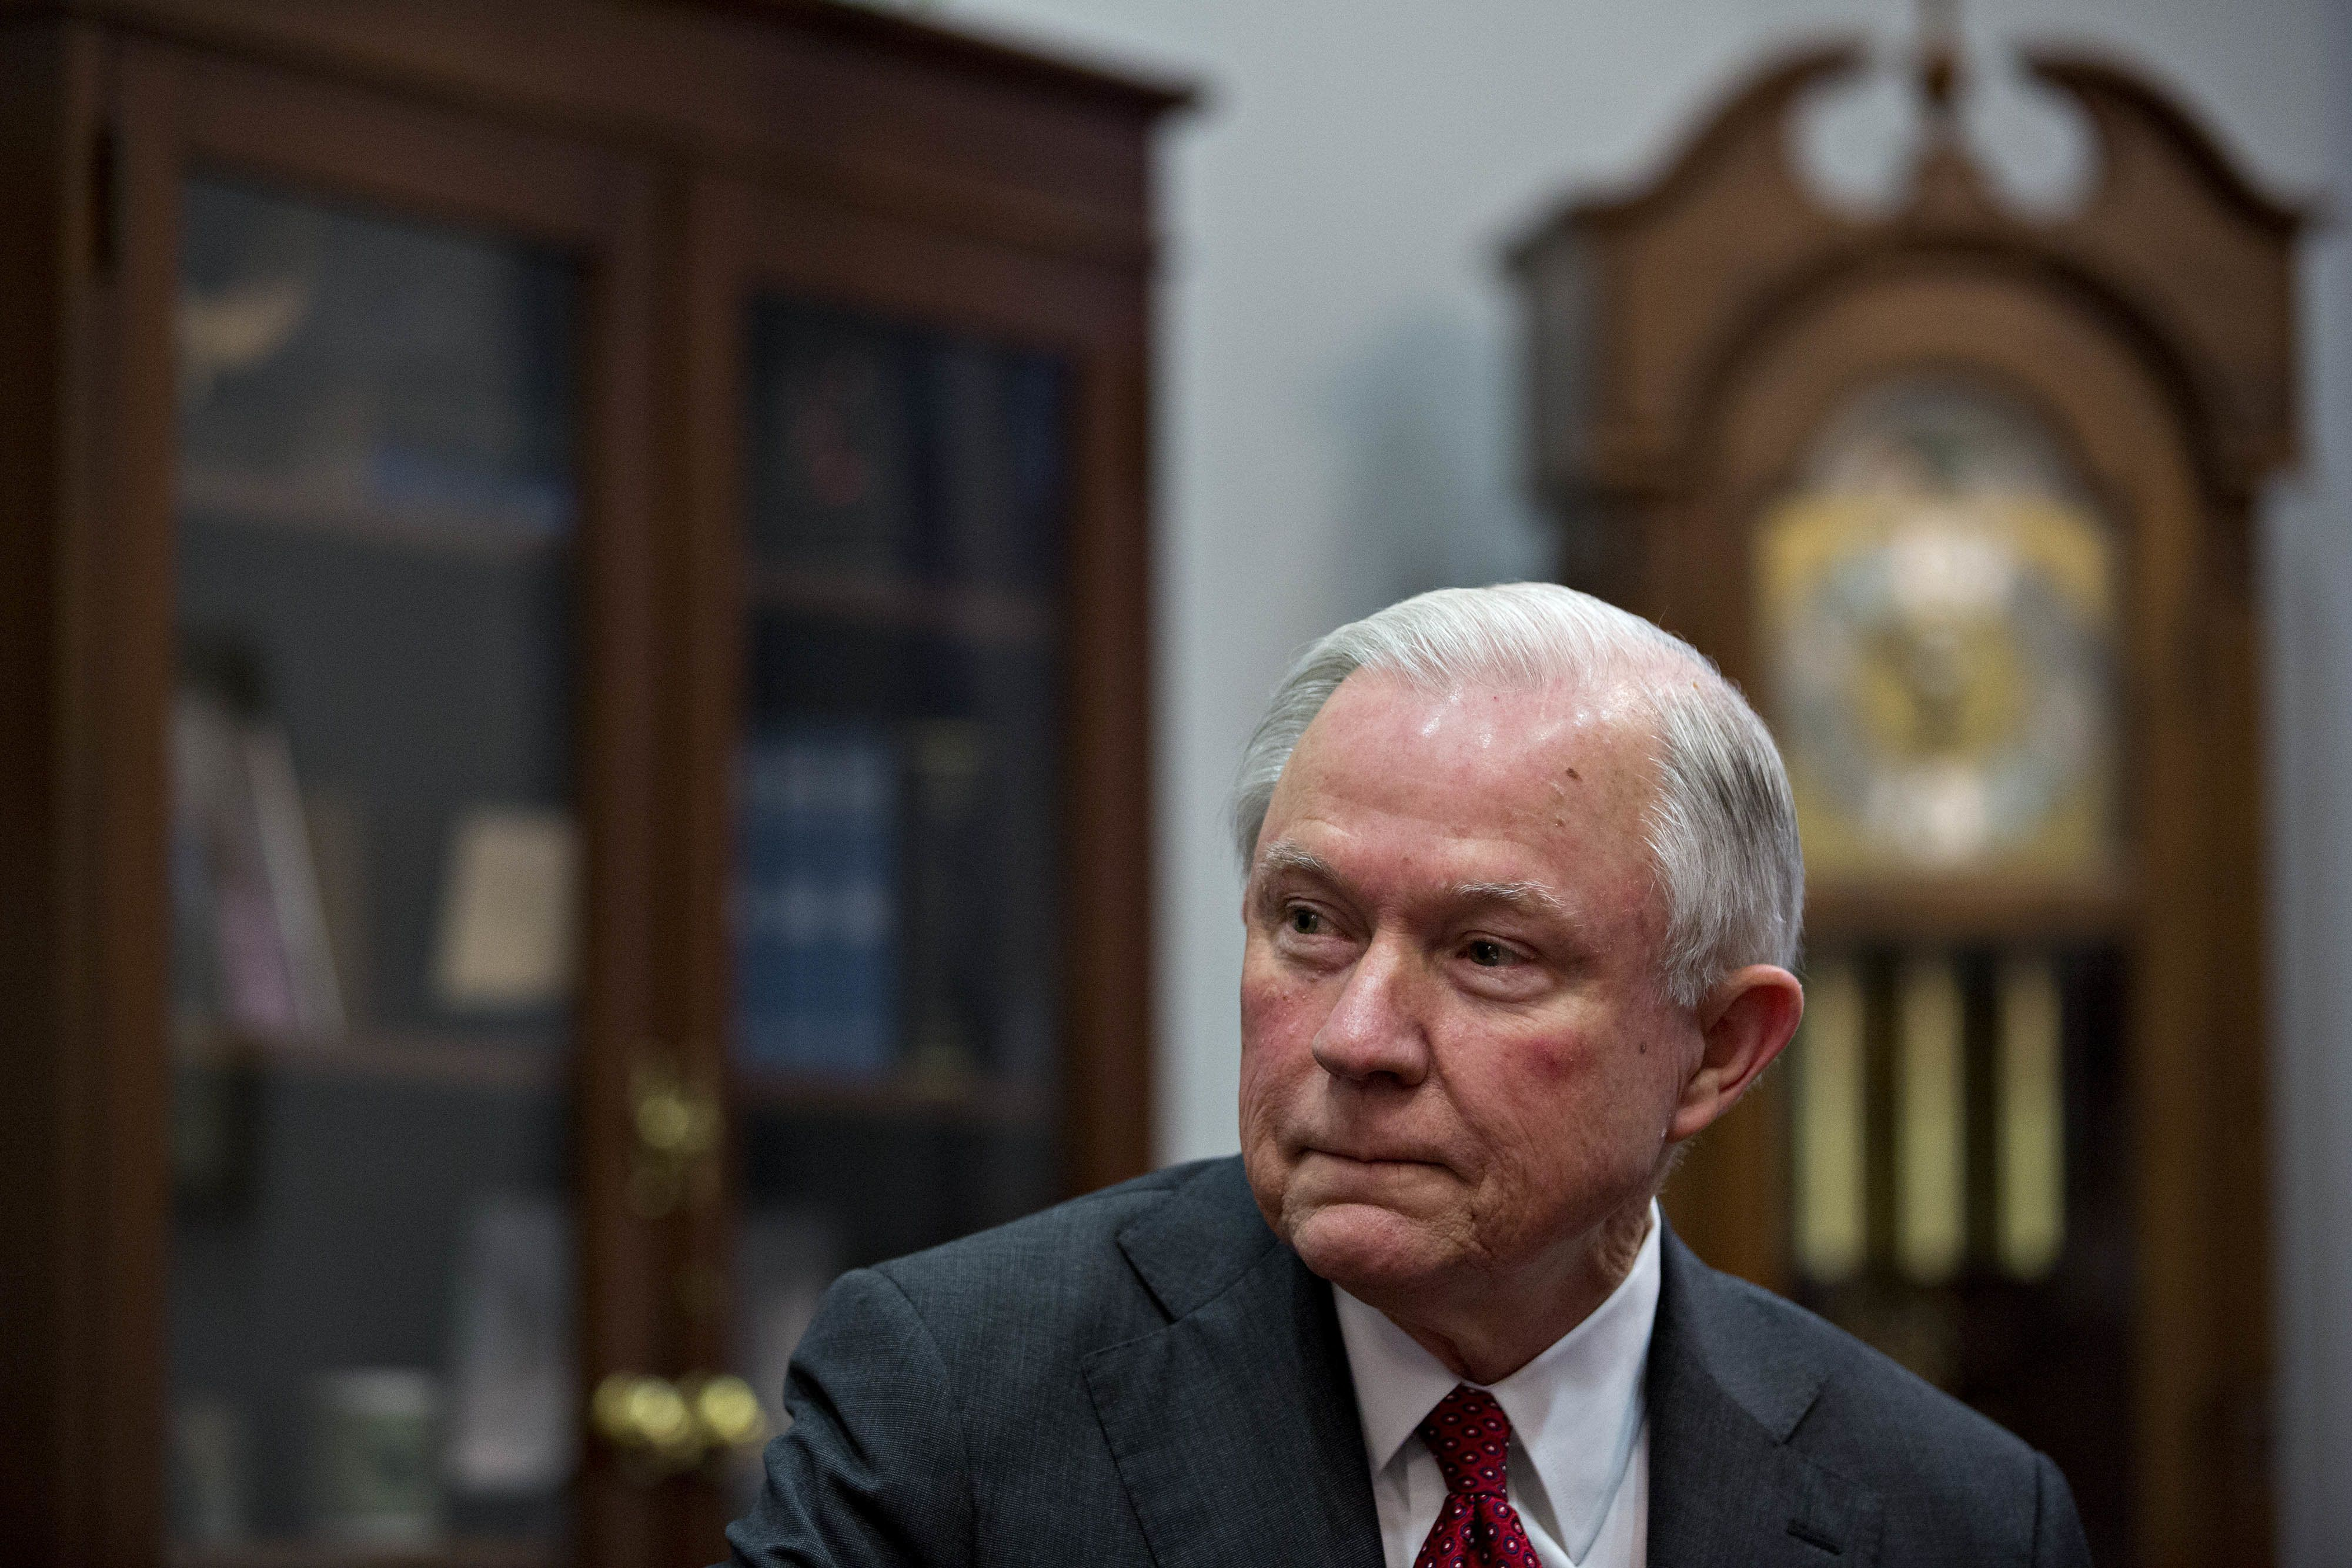 Senator Jeff Sessions, attorney general pick for U.S. President-elect Donald Trump, listens as Senator Charles 'Chuck' Grassley, a Republican from Iowa, not pictured, speaks during a meeting in Washington, D.C., U.S, on Tuesday, Nov. 29, 2016. Sessions, the 69-year-old, four-term Alabama Republican is a hard-liner on free trade and immigration, arguing that prospective immigrants dont have constitutional protections. Photographer: Andrew Harrer/Bloomberg via Getty Images